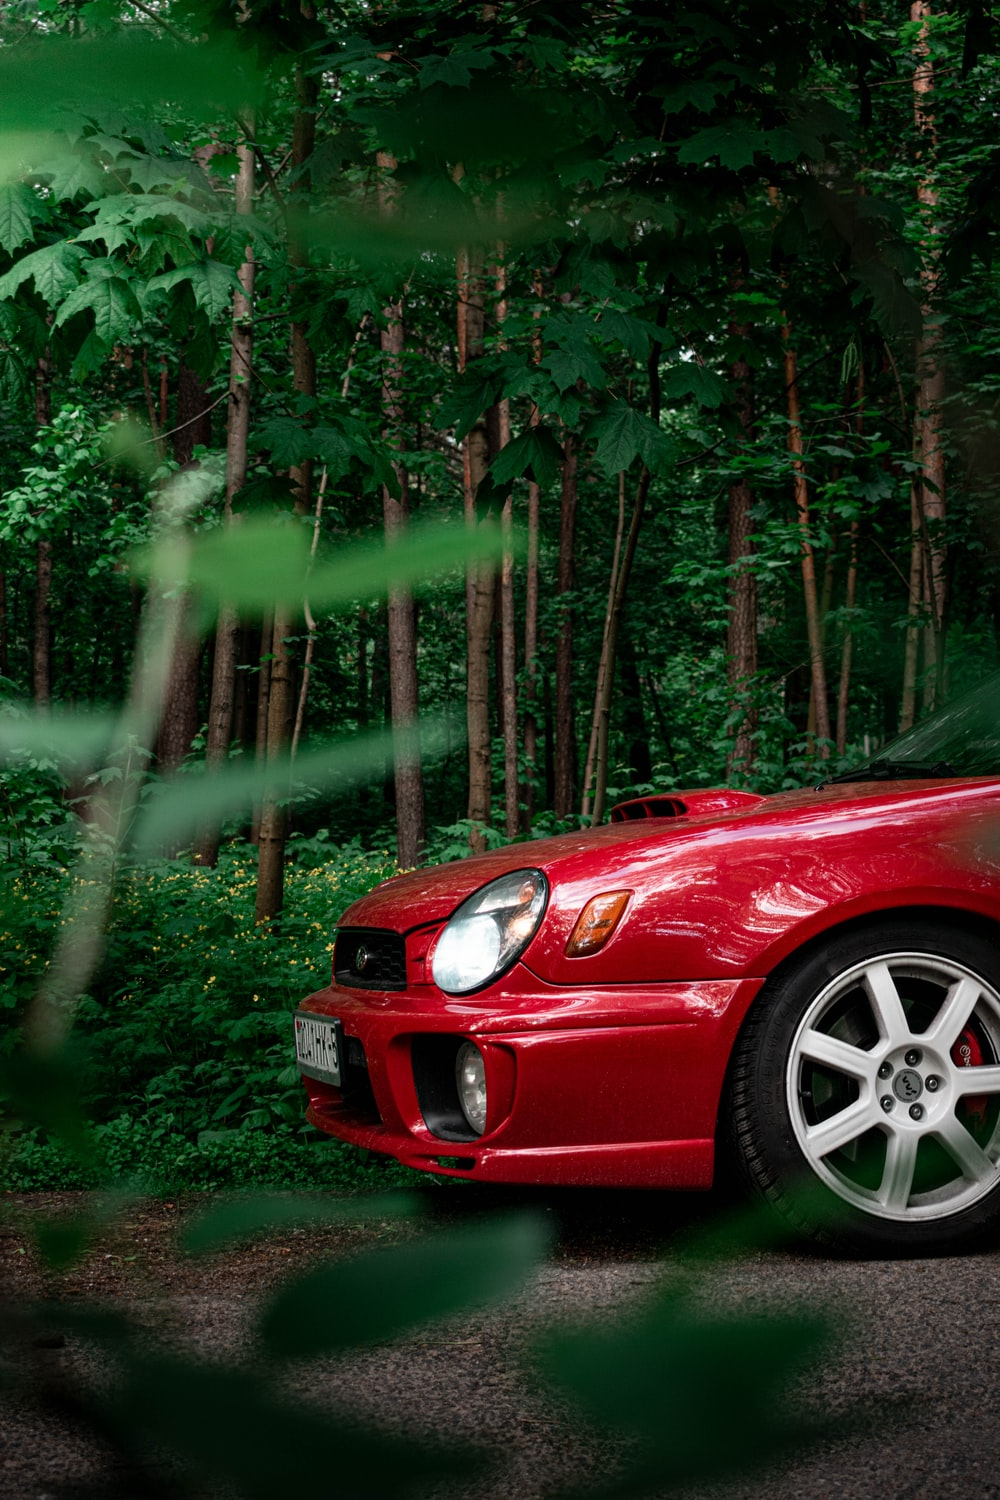 red car on forest during daytime